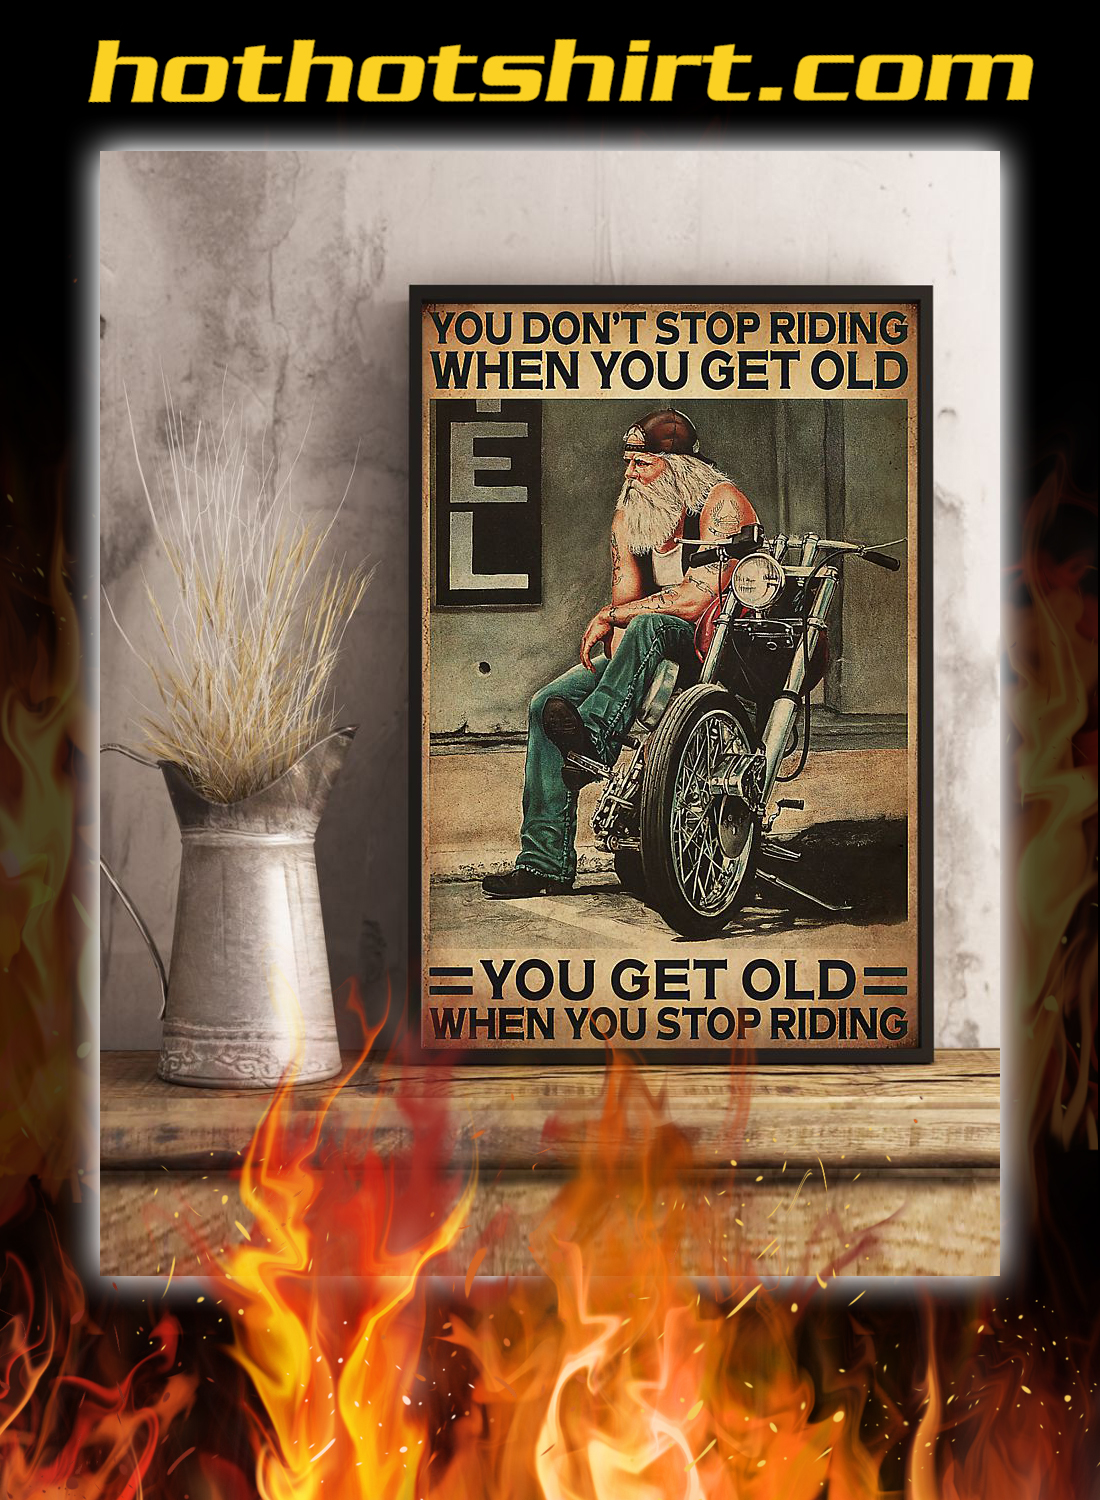 Motorcycle You don't stop riding when you get old poster 3